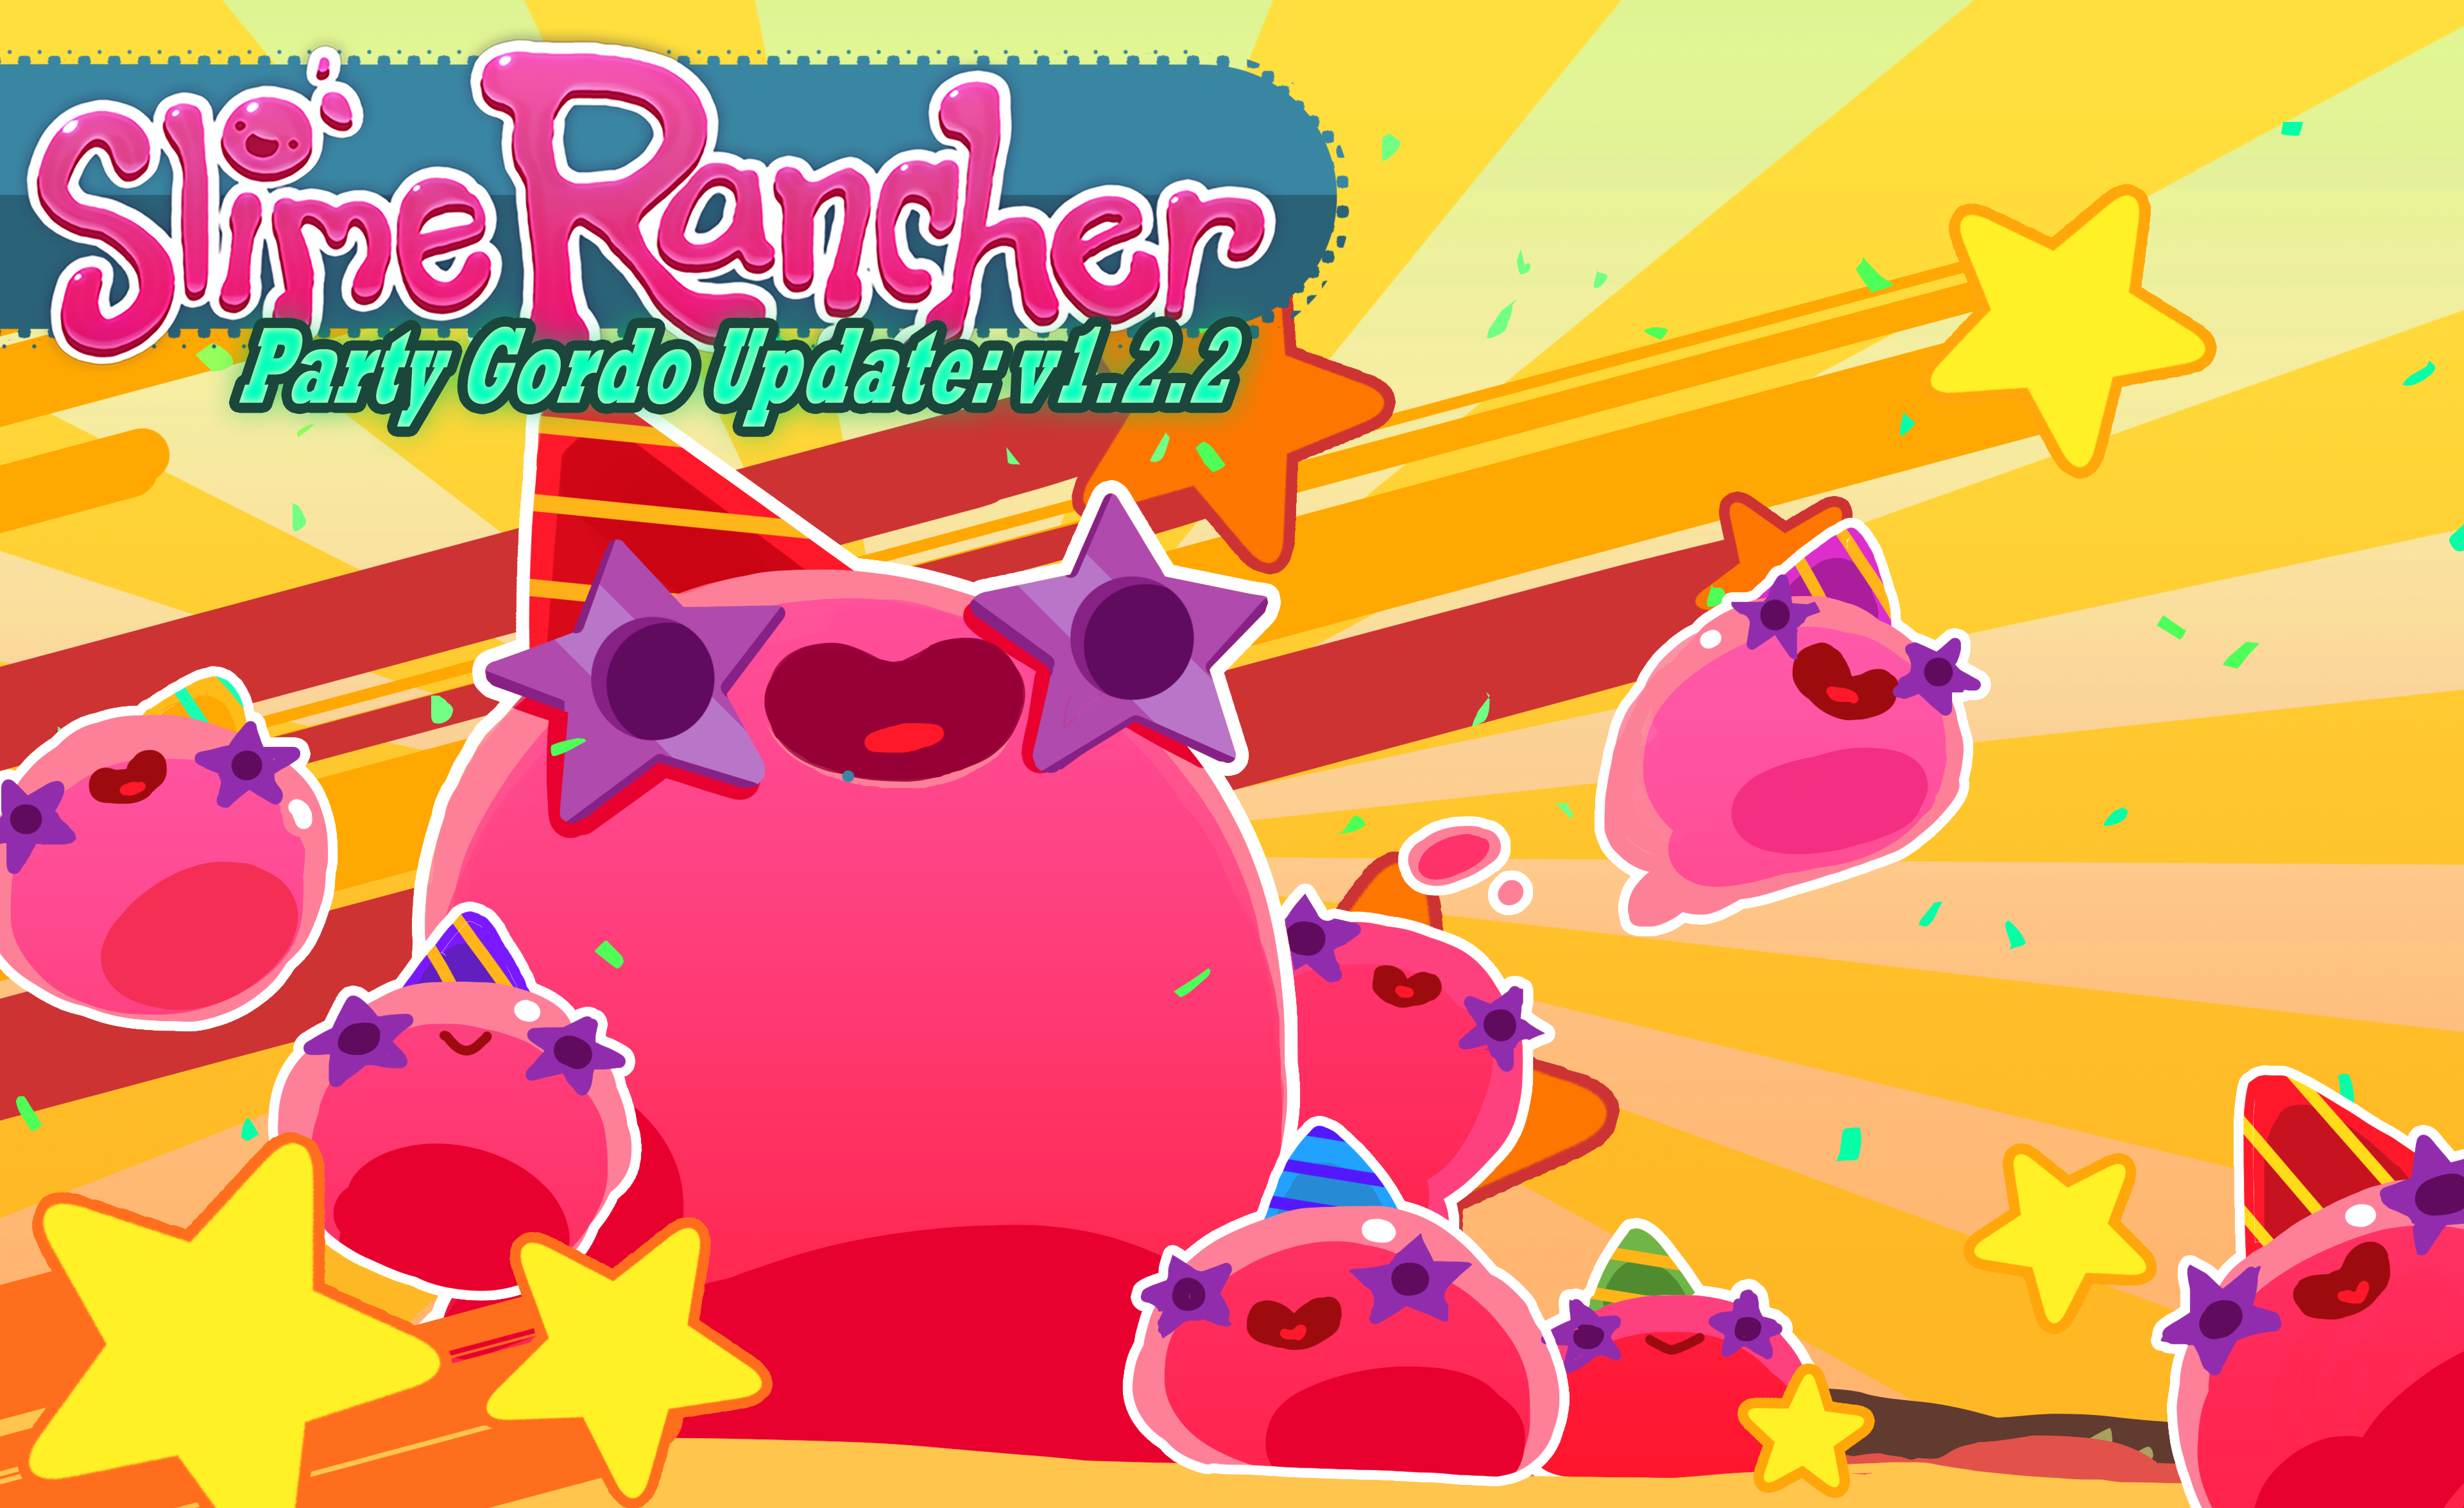 cd8dd794406246867fc3fab307034a9f - How To Get Slime Rancher For Free On Steam